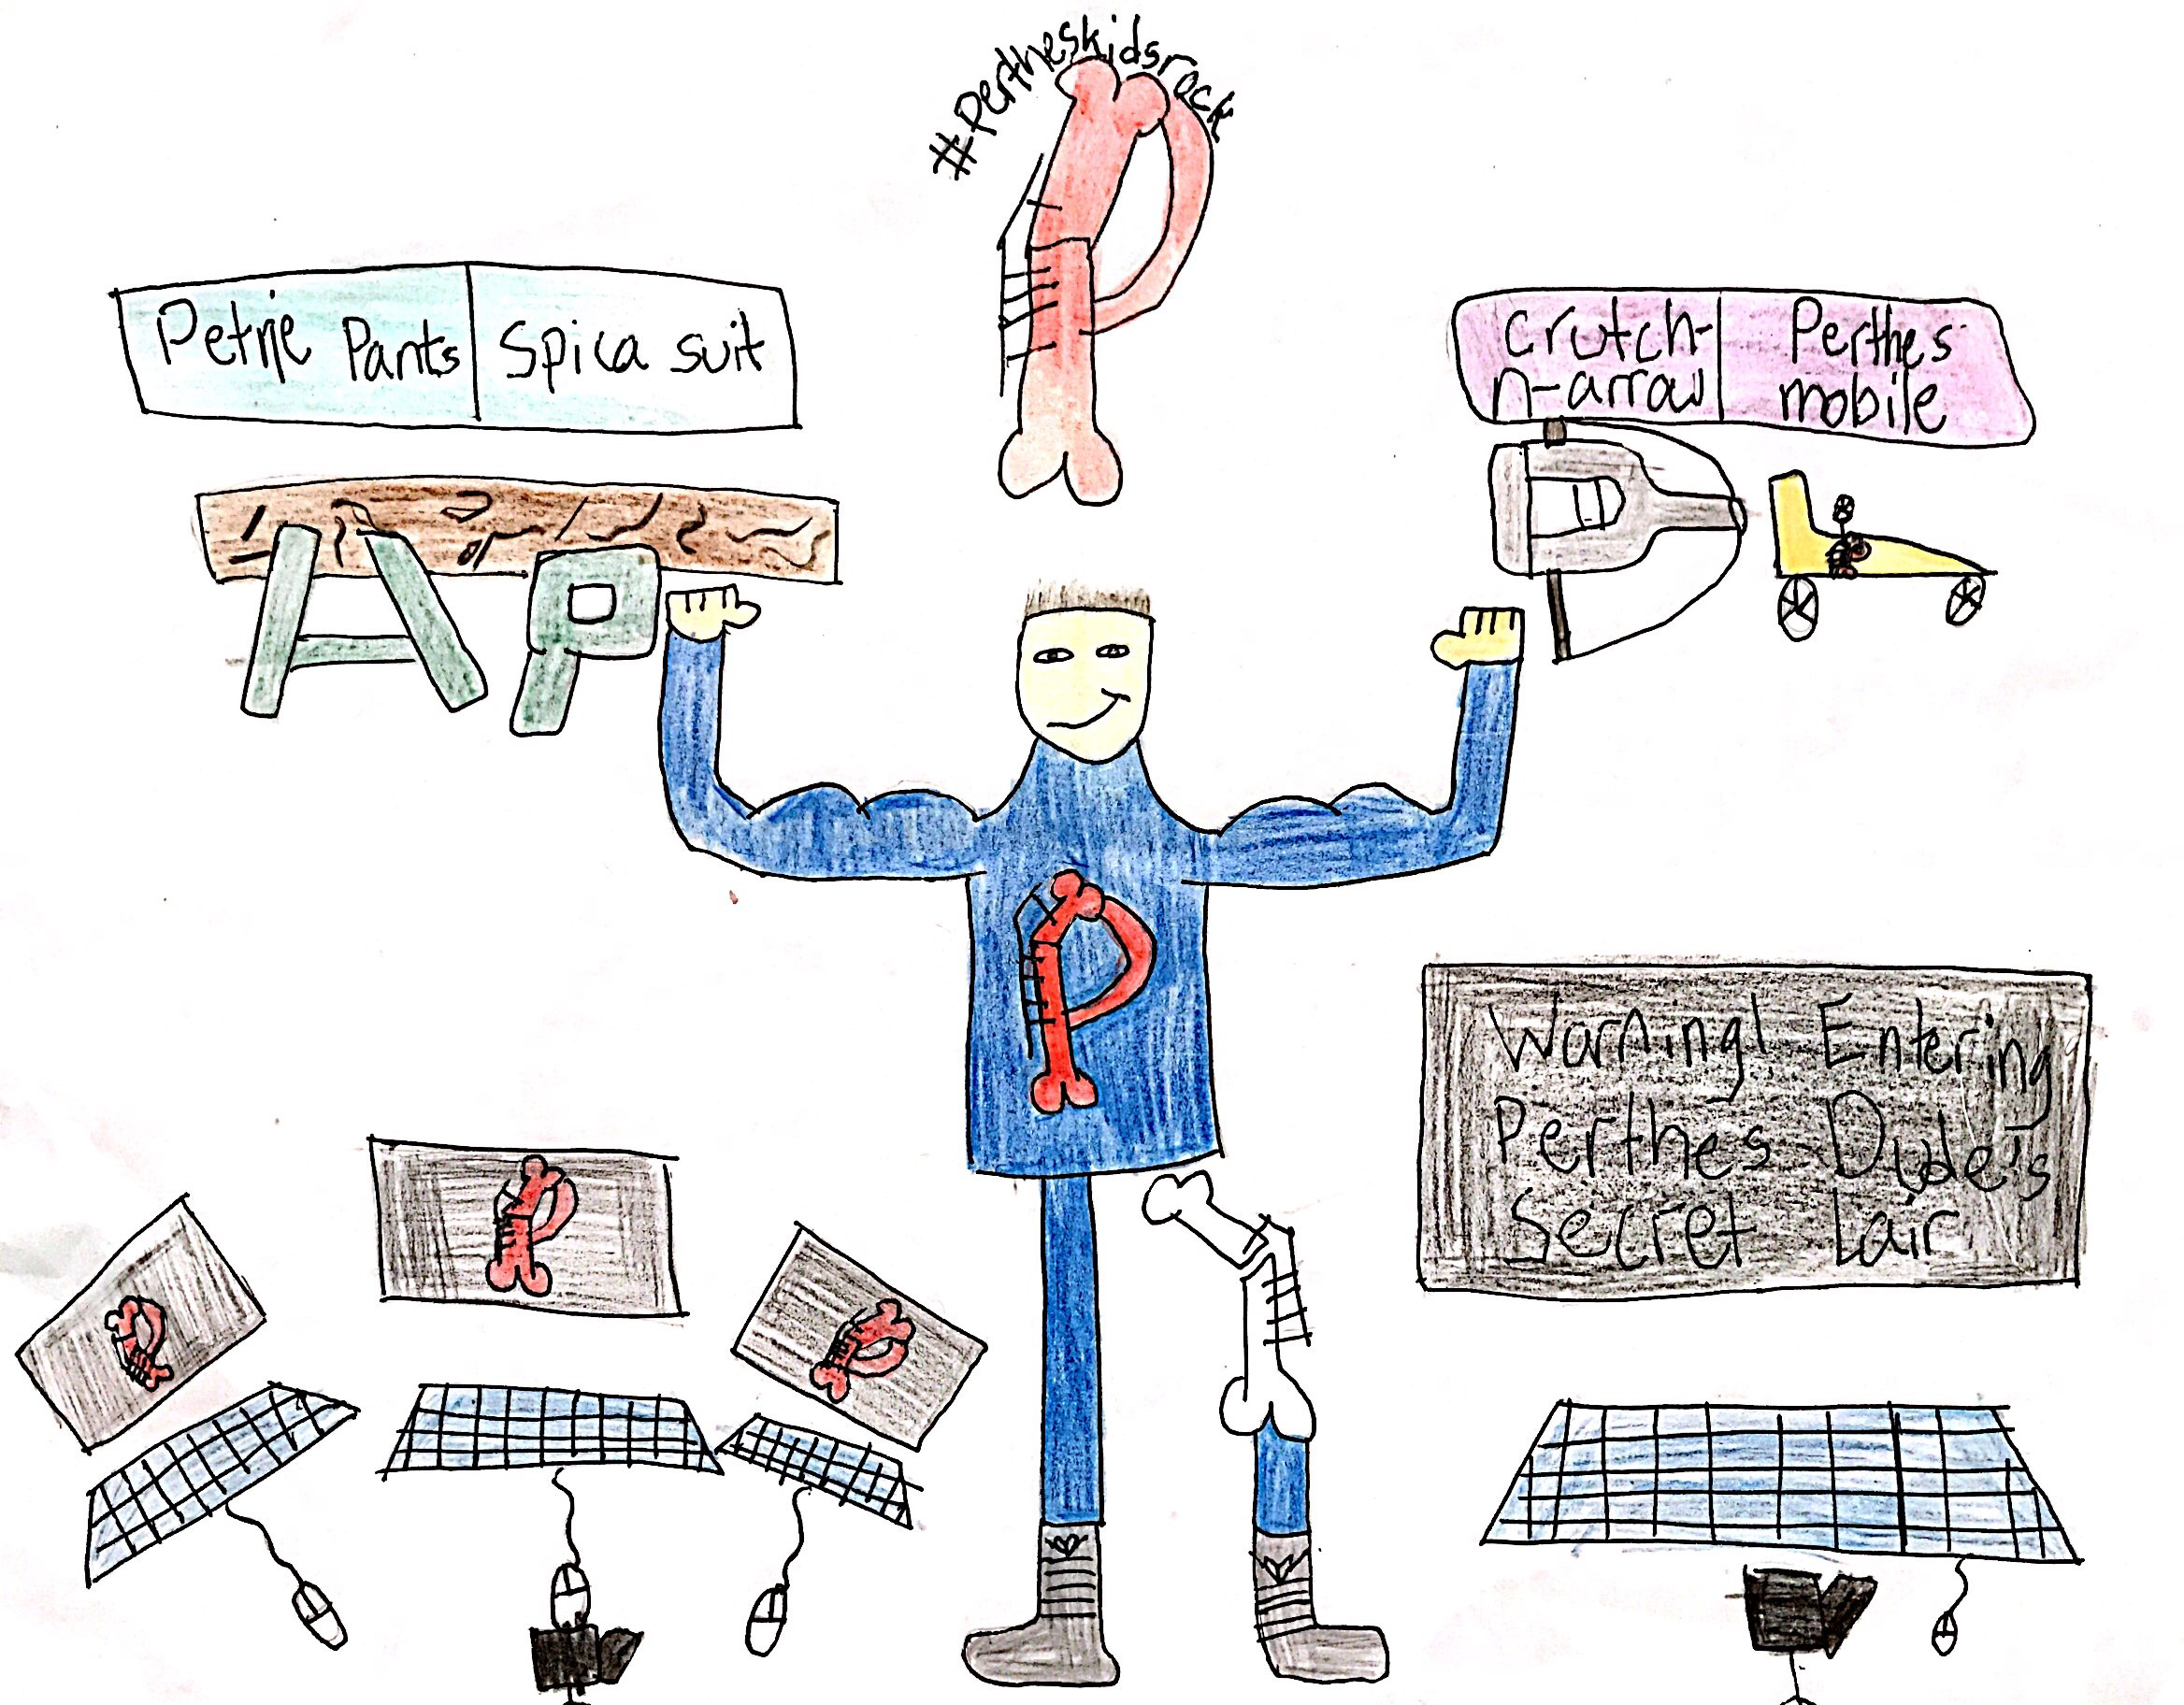 014 - PERTHES IS A SUPERPOWER by Luai Kakish (age 9) in Marlborough, Massachusetts, USA